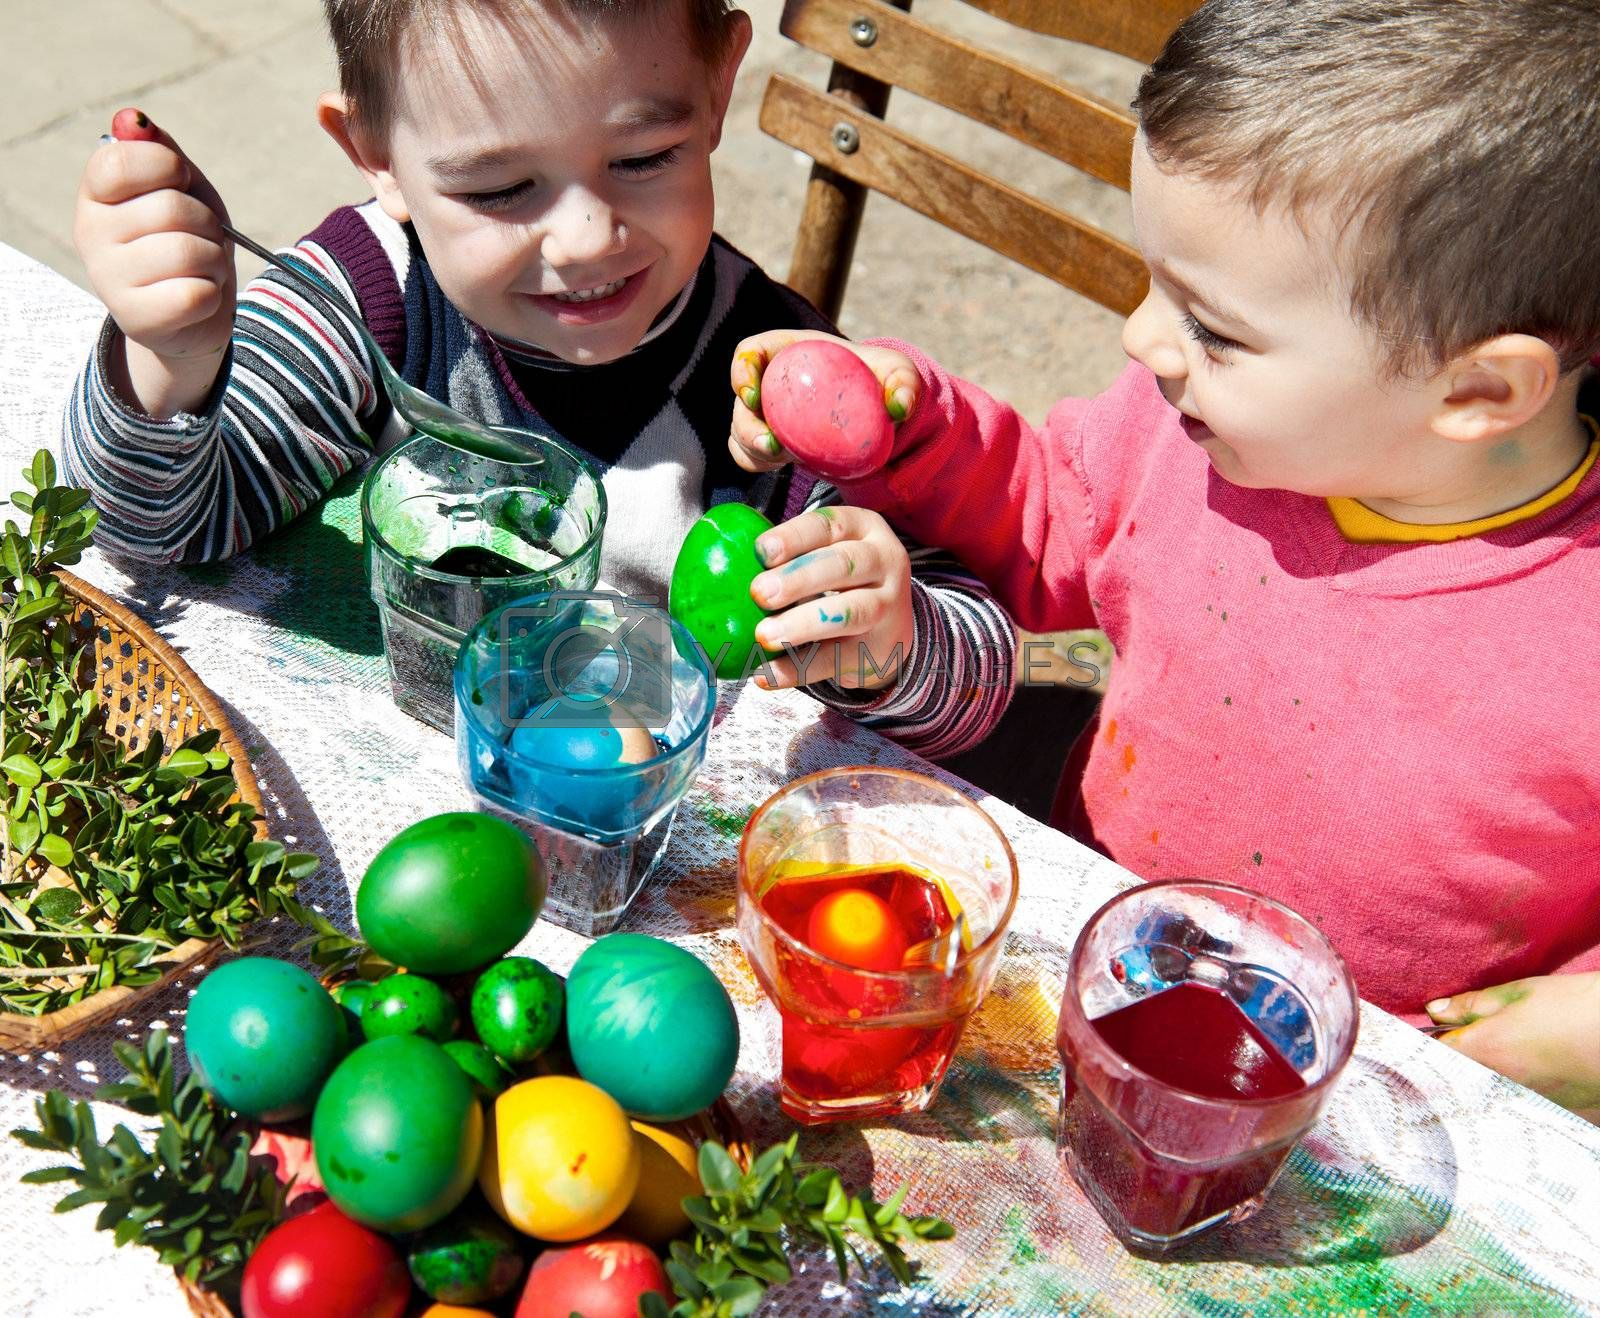 boys dyeing eggs easter fun by anton.chalakov@gmail.com